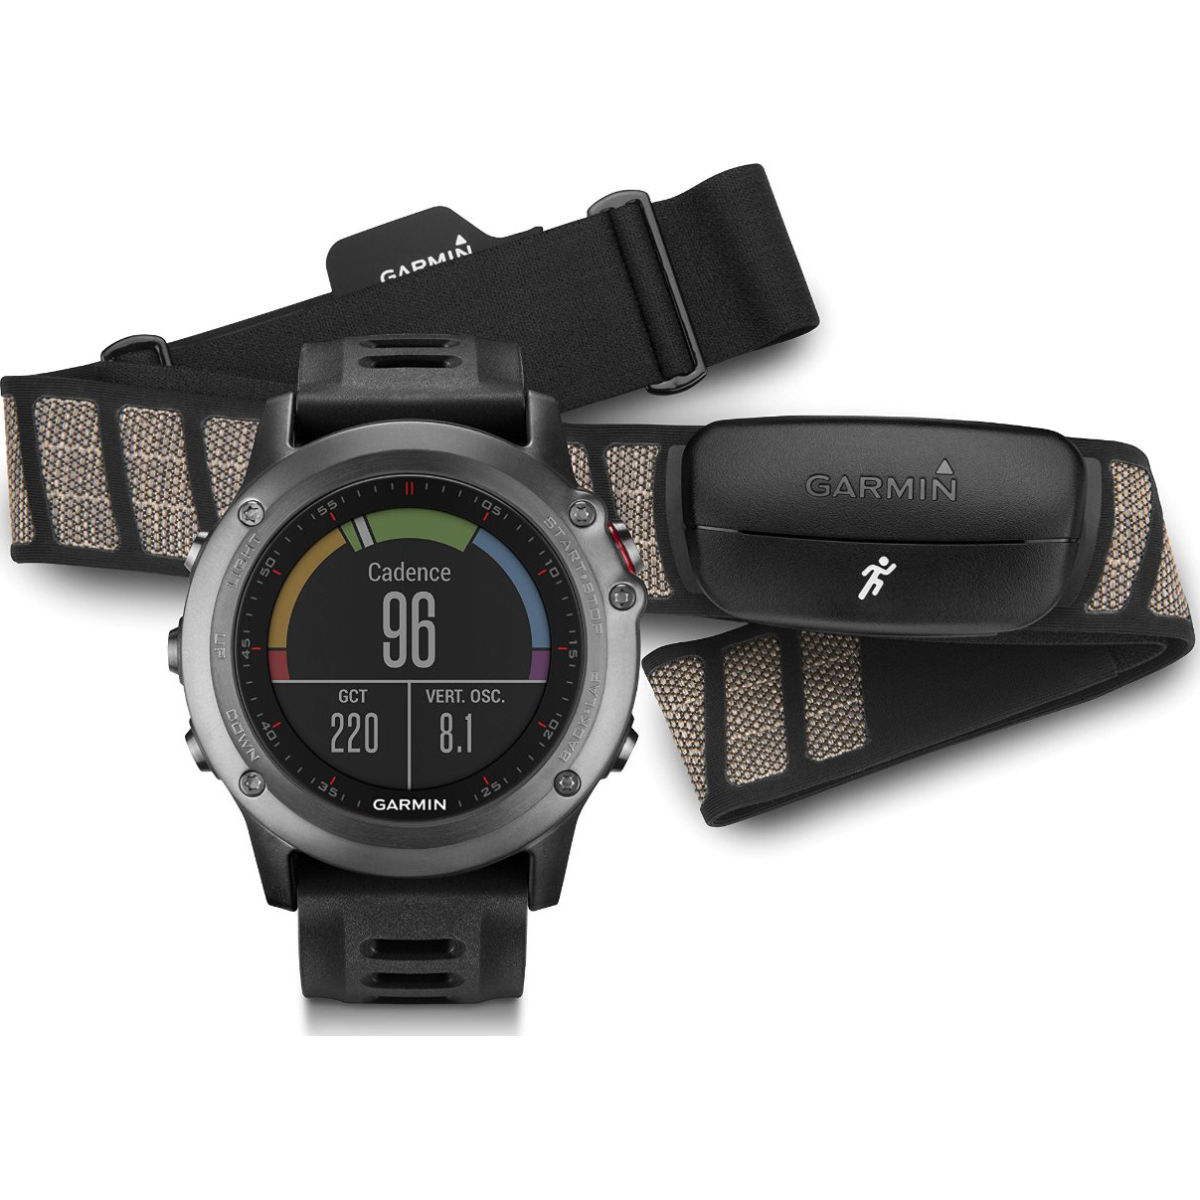 Garmin fenix 3 Multisport Training GPS Watch [$299]